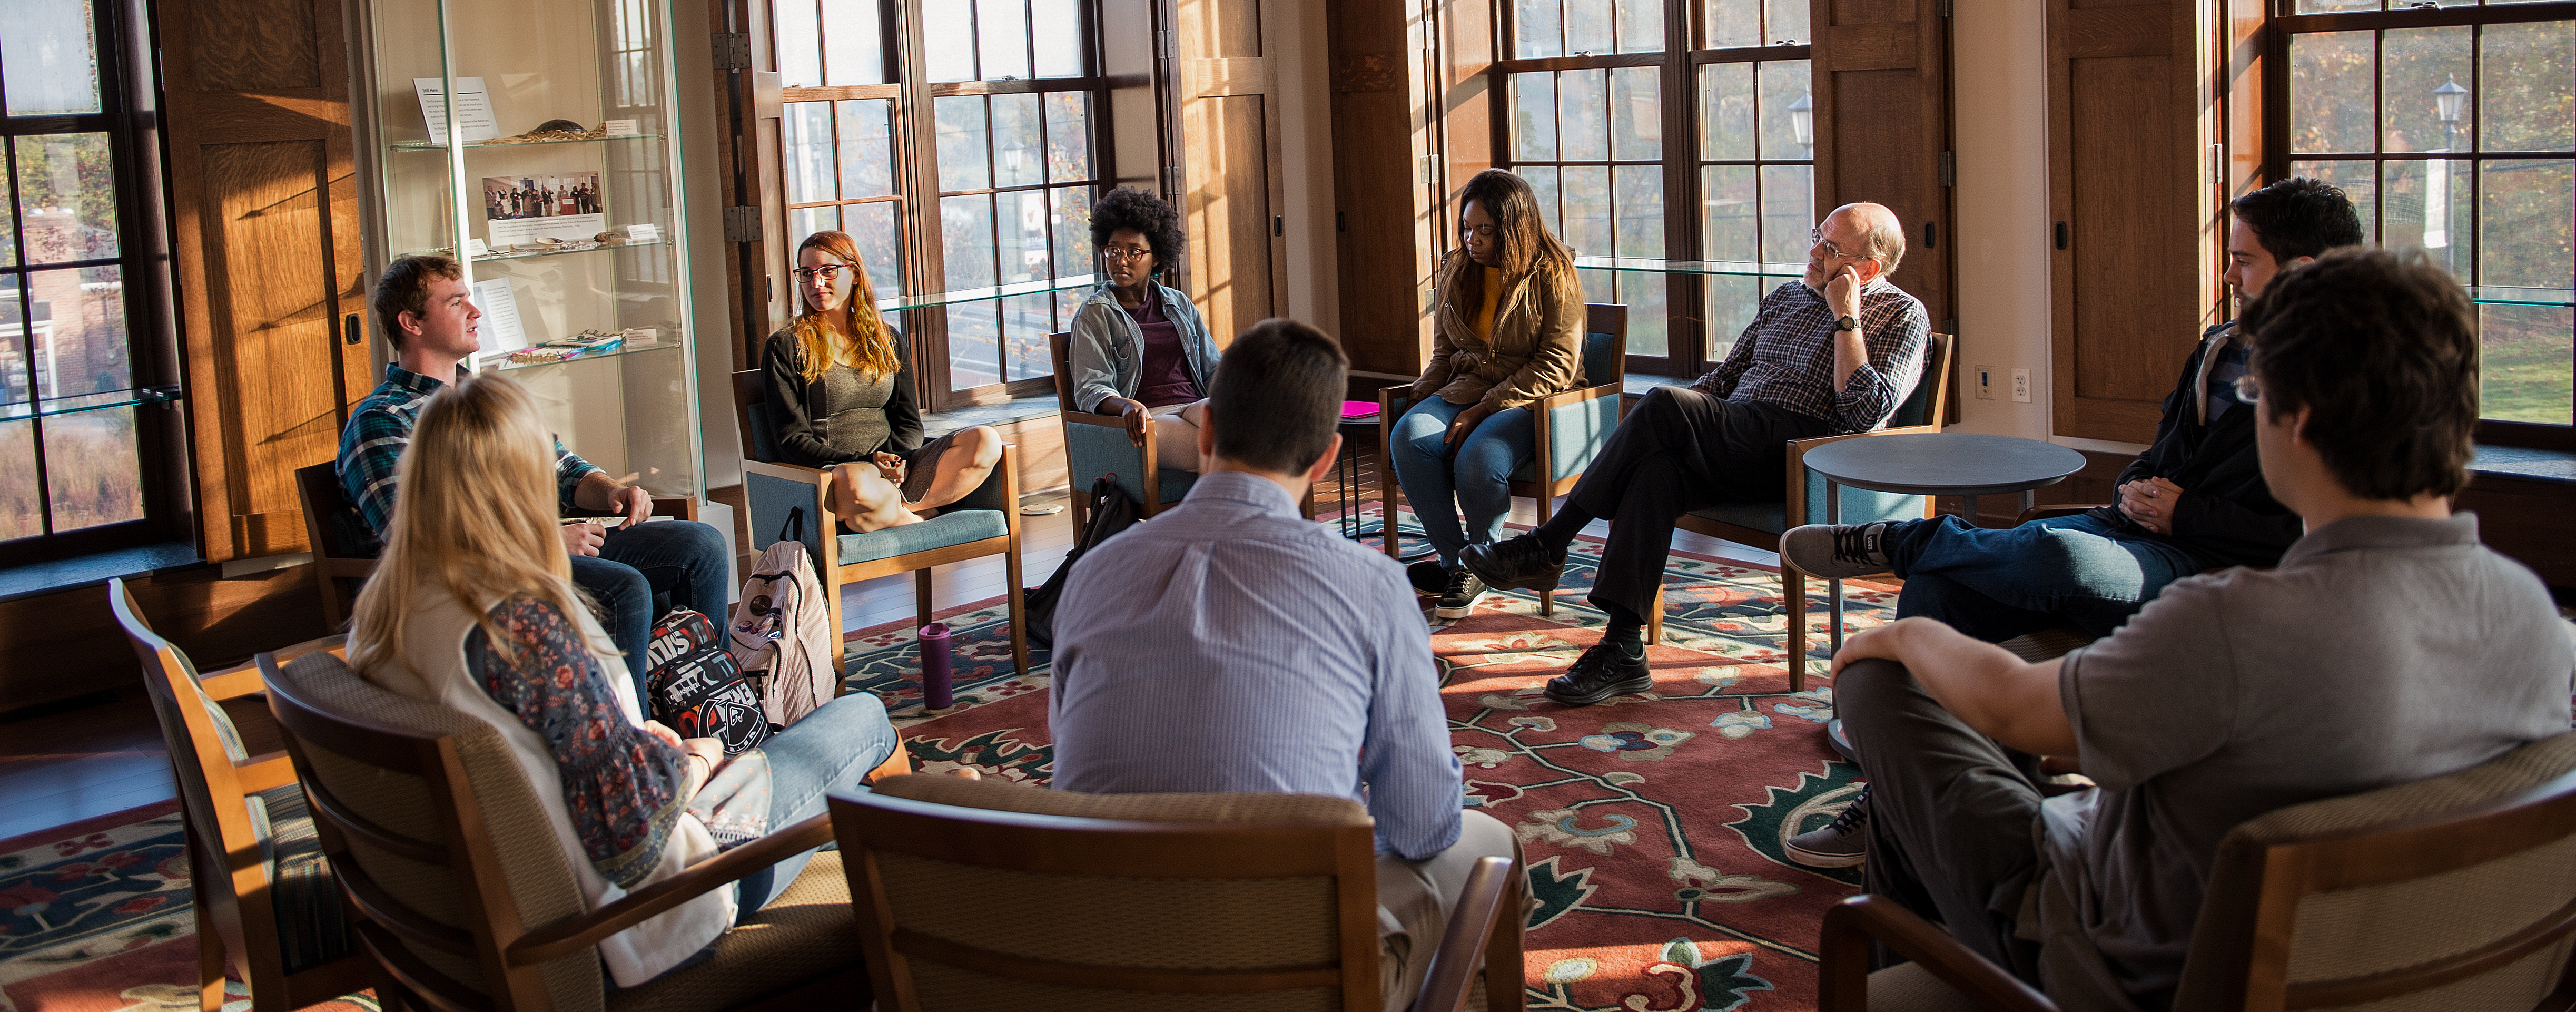 8 students and a professor sit in a circle in a group discussion in a room full of windows.